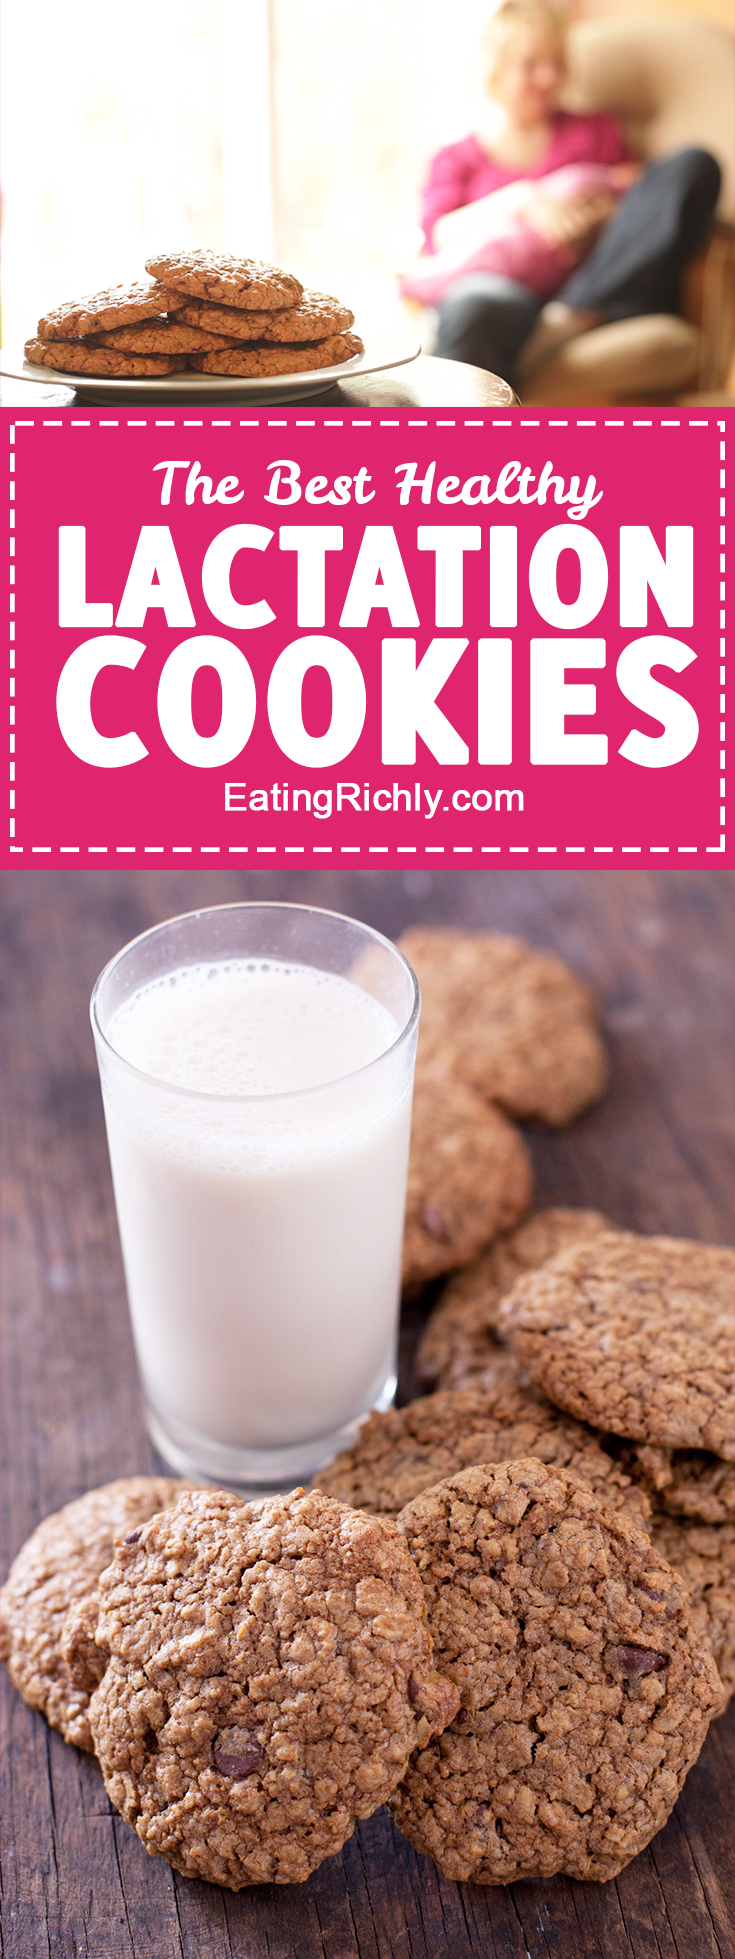 The best lactation cookies recipe for breastfeeding moms - EatingRichly.com